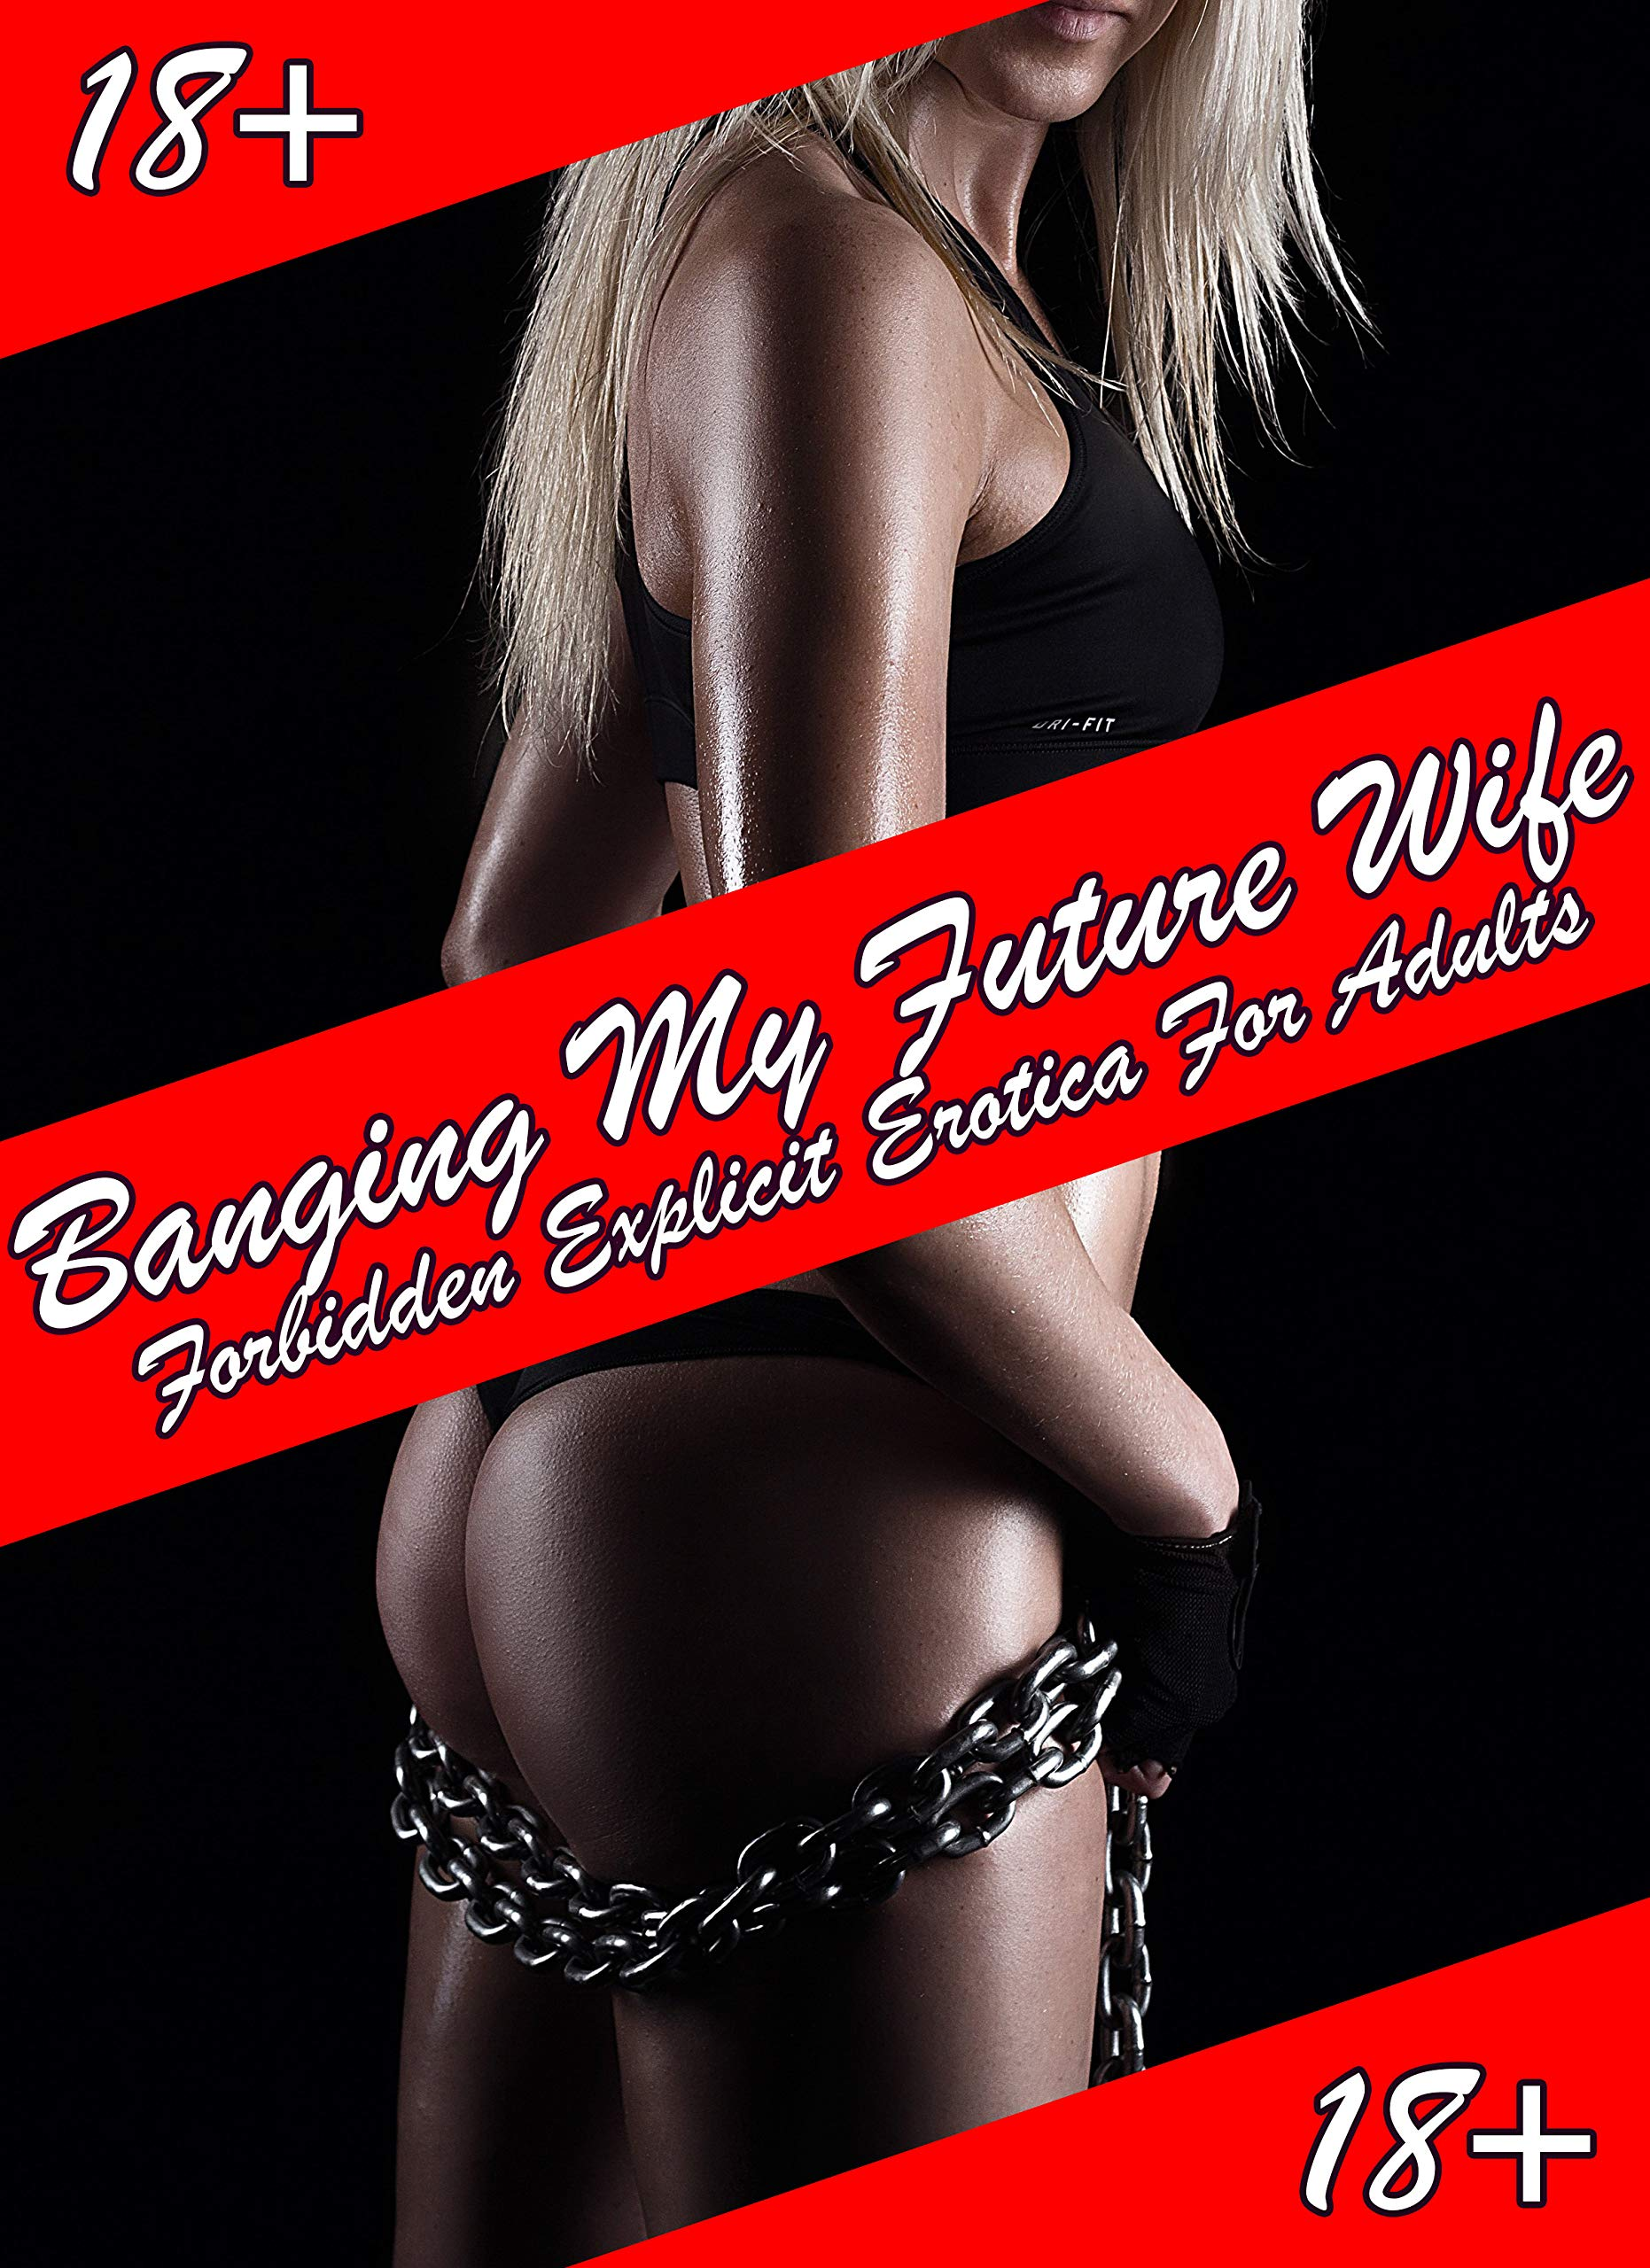 Banging My Future Wife. Forbidden Explicit Erotica For Adults 18+: Bisexual Goup Sex Story